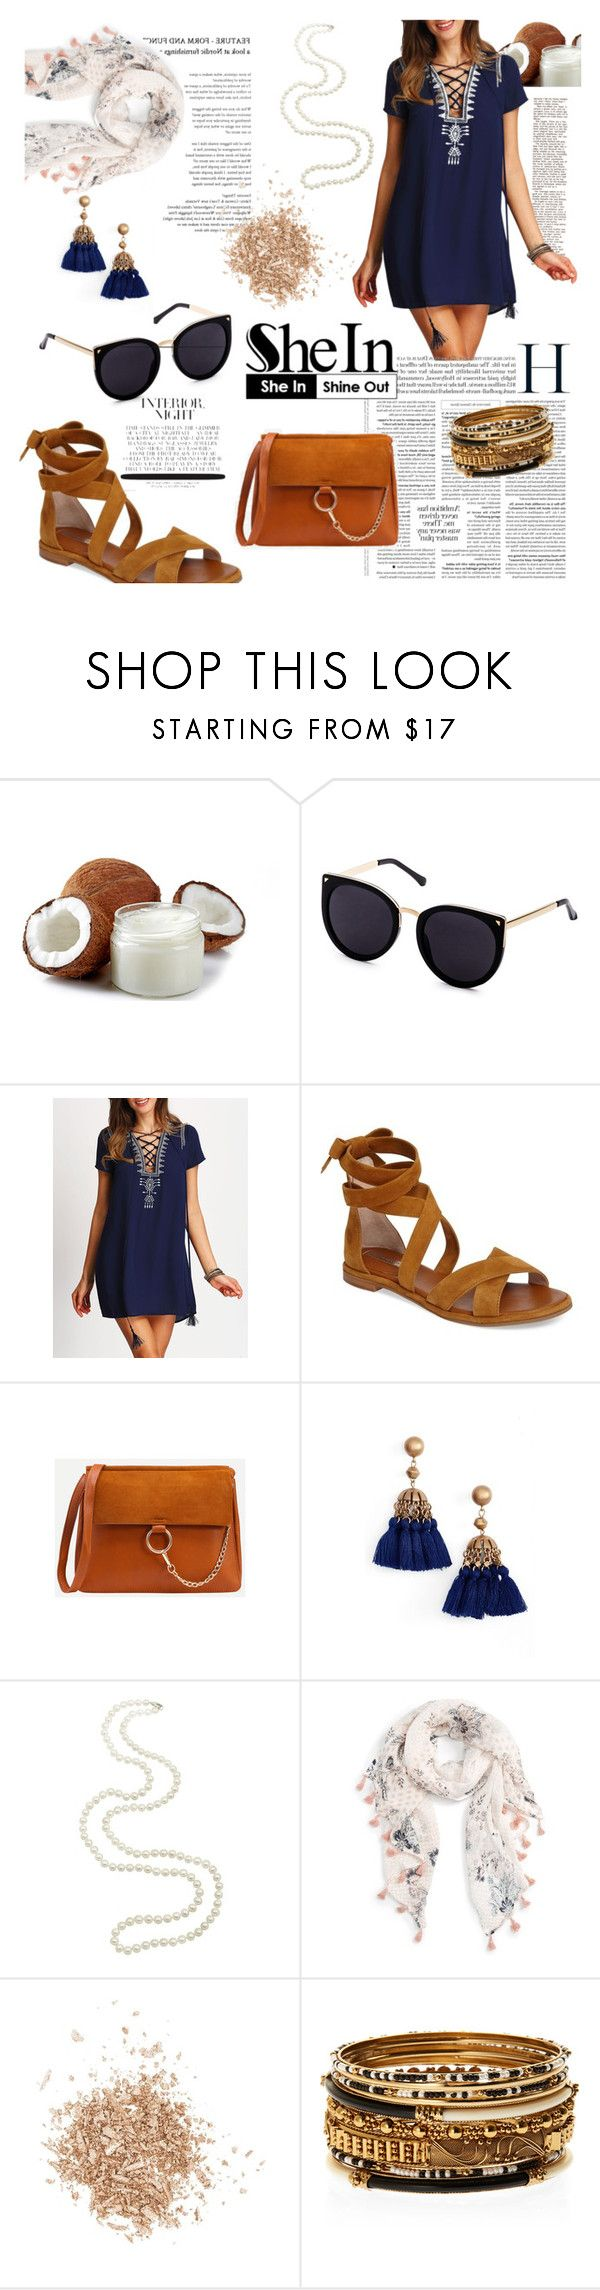 """""""shein tasseled lace up"""" by evelin93 ❤ liked on Polyvore featuring Louise et Cie, Loren Hope, Caslon, Topshop and Amrita Singh"""